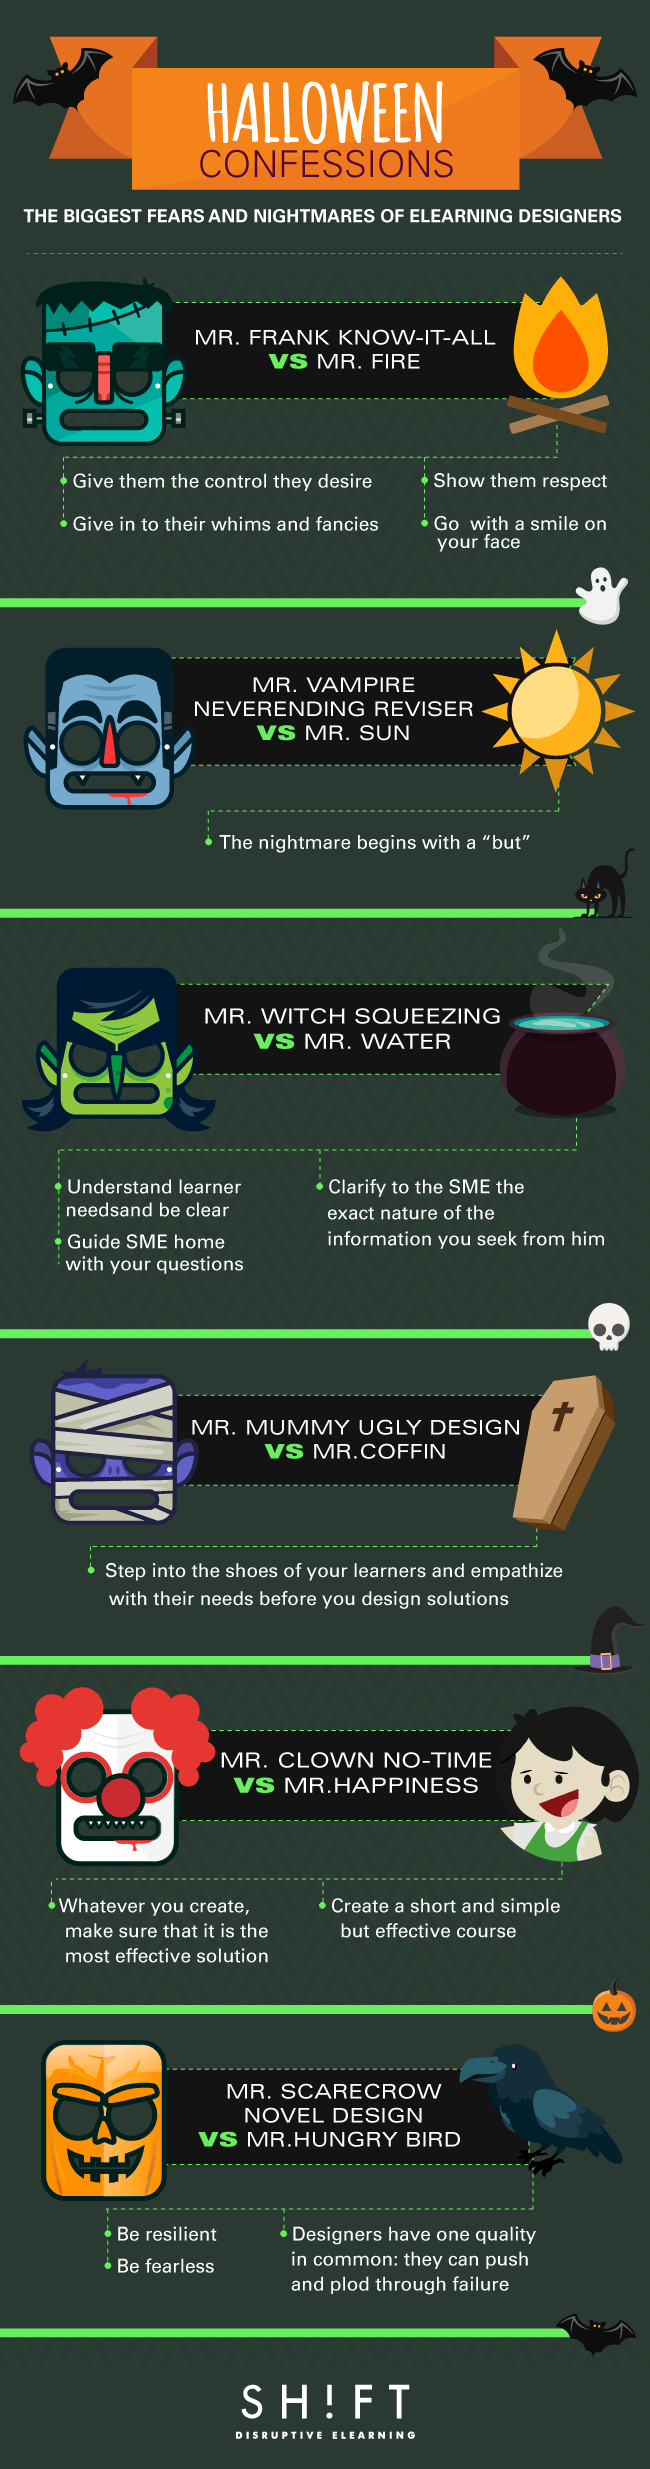 The Biggest Fears and Nightmares of eLearning Designers Infographic